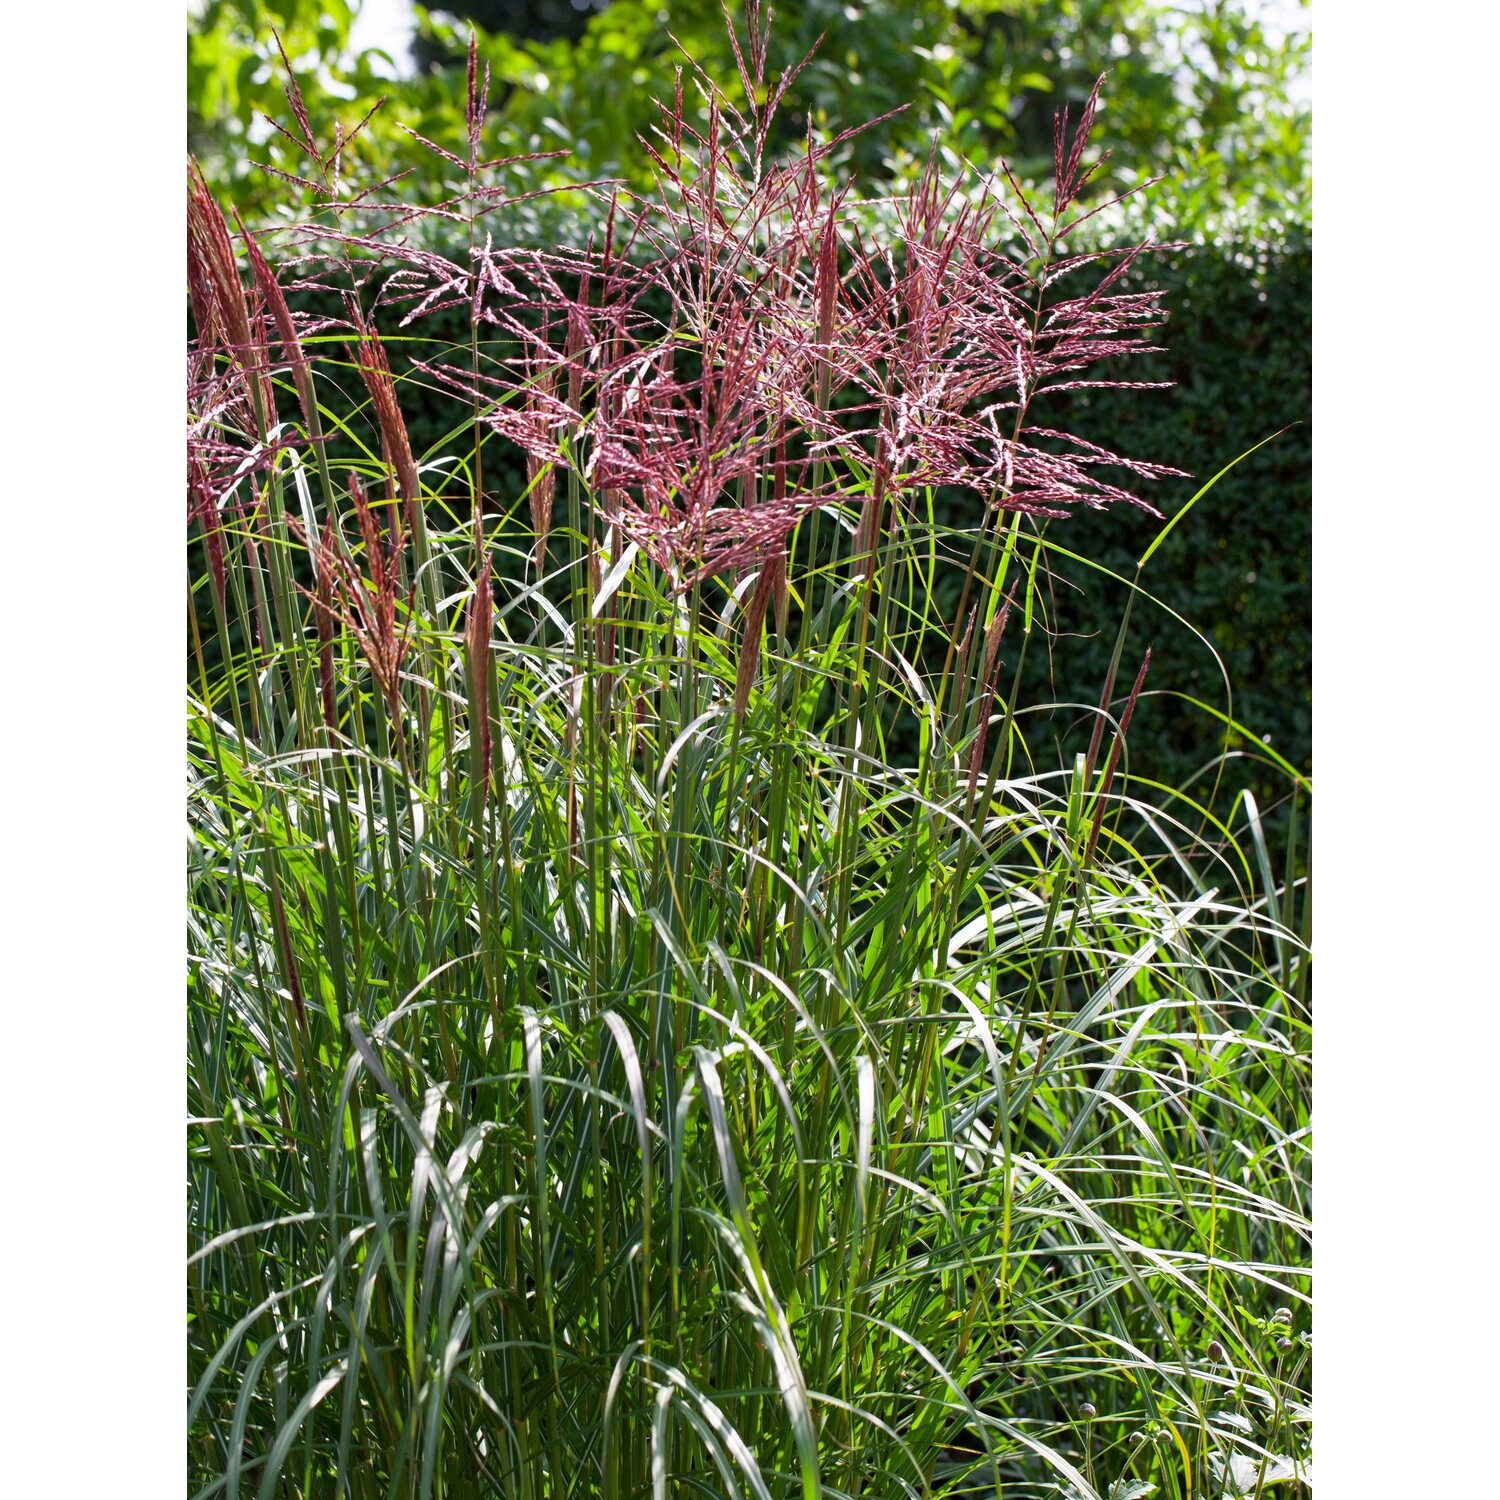 chinaschilf september rot topf ca 28 cm miscanthus. Black Bedroom Furniture Sets. Home Design Ideas